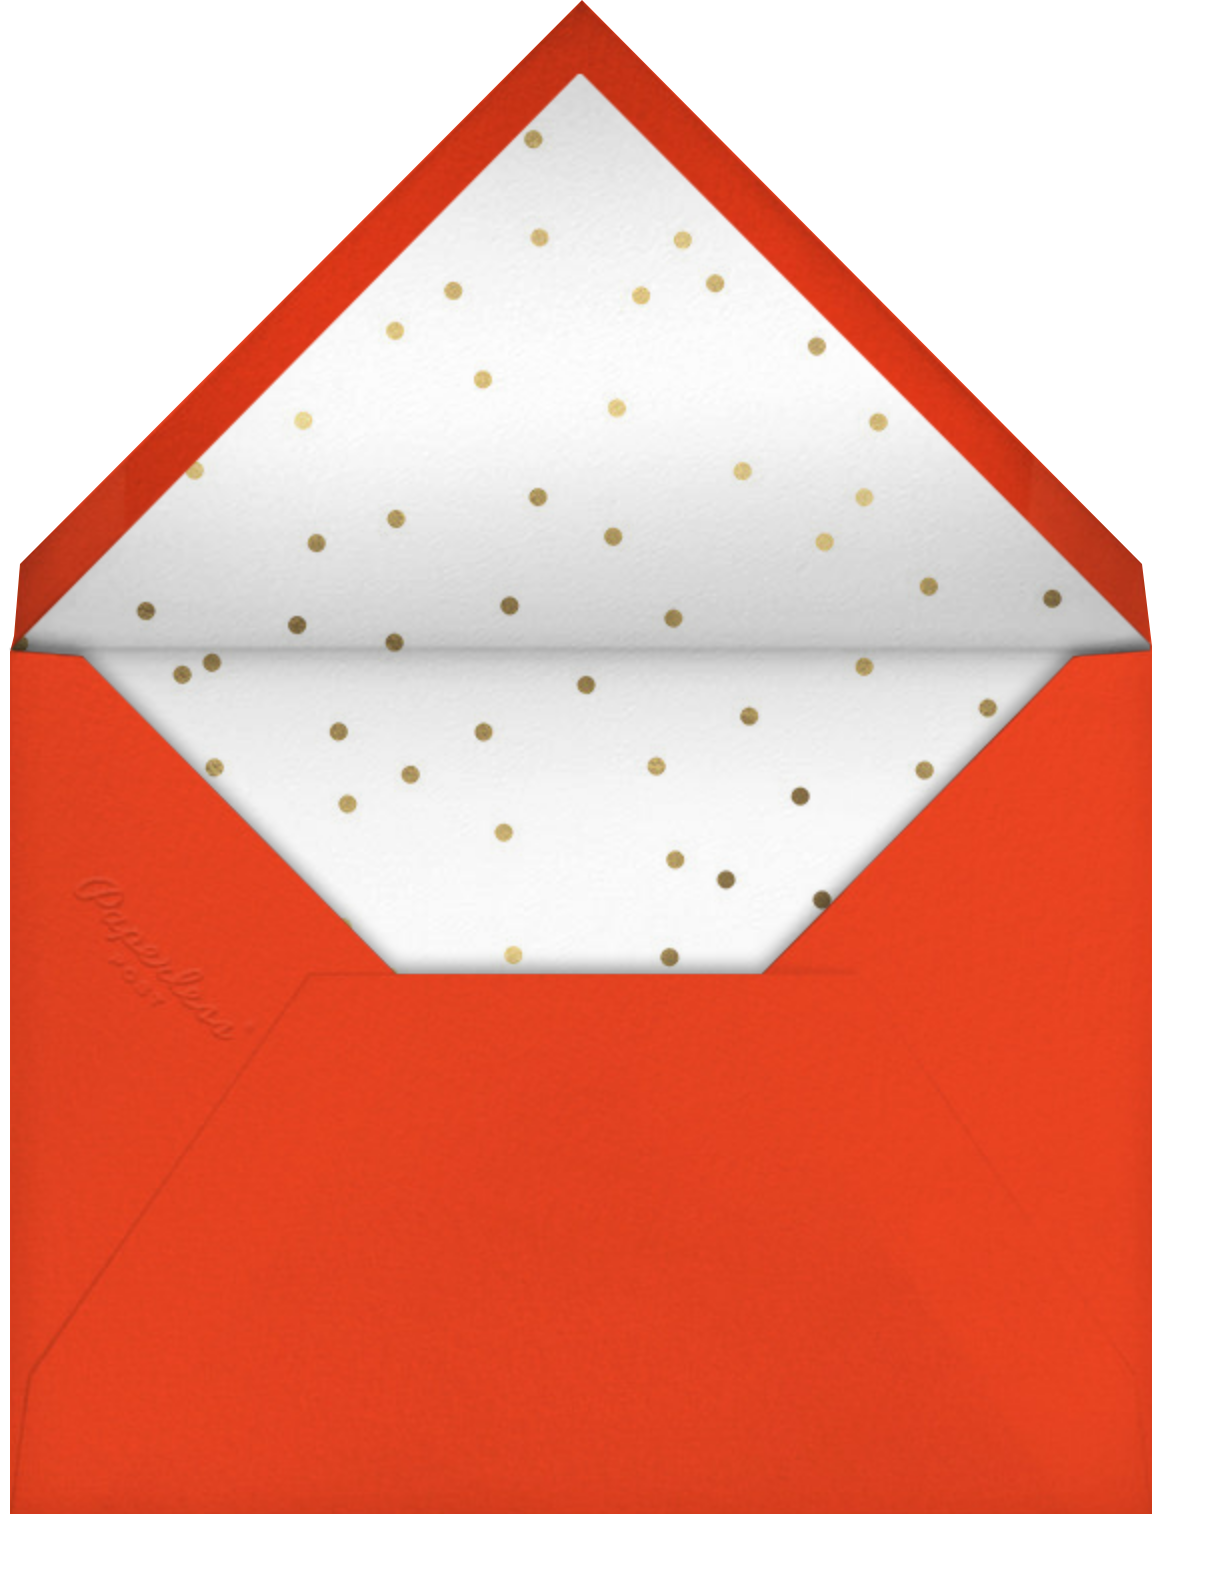 Wildwood Holiday Photo - Rifle Paper Co. - Envelope